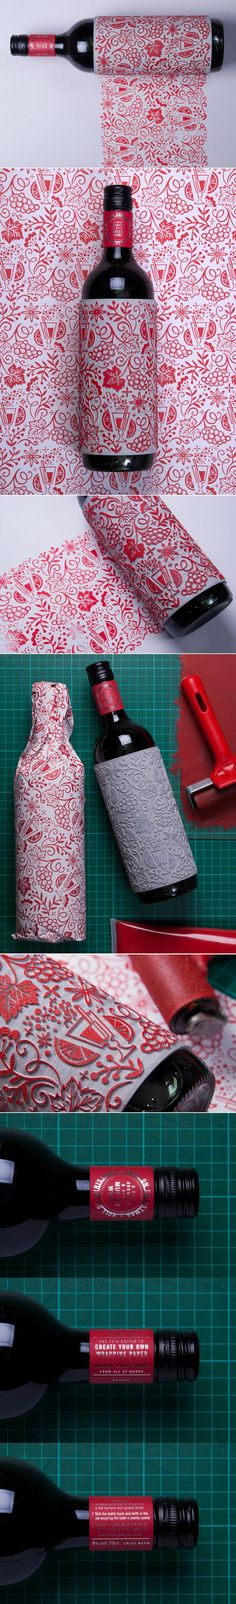 This Unique and Festive Wine Label Also Serves as a Decorative Stamp — The Dieline | Packaging & Branding Design & Innovation News